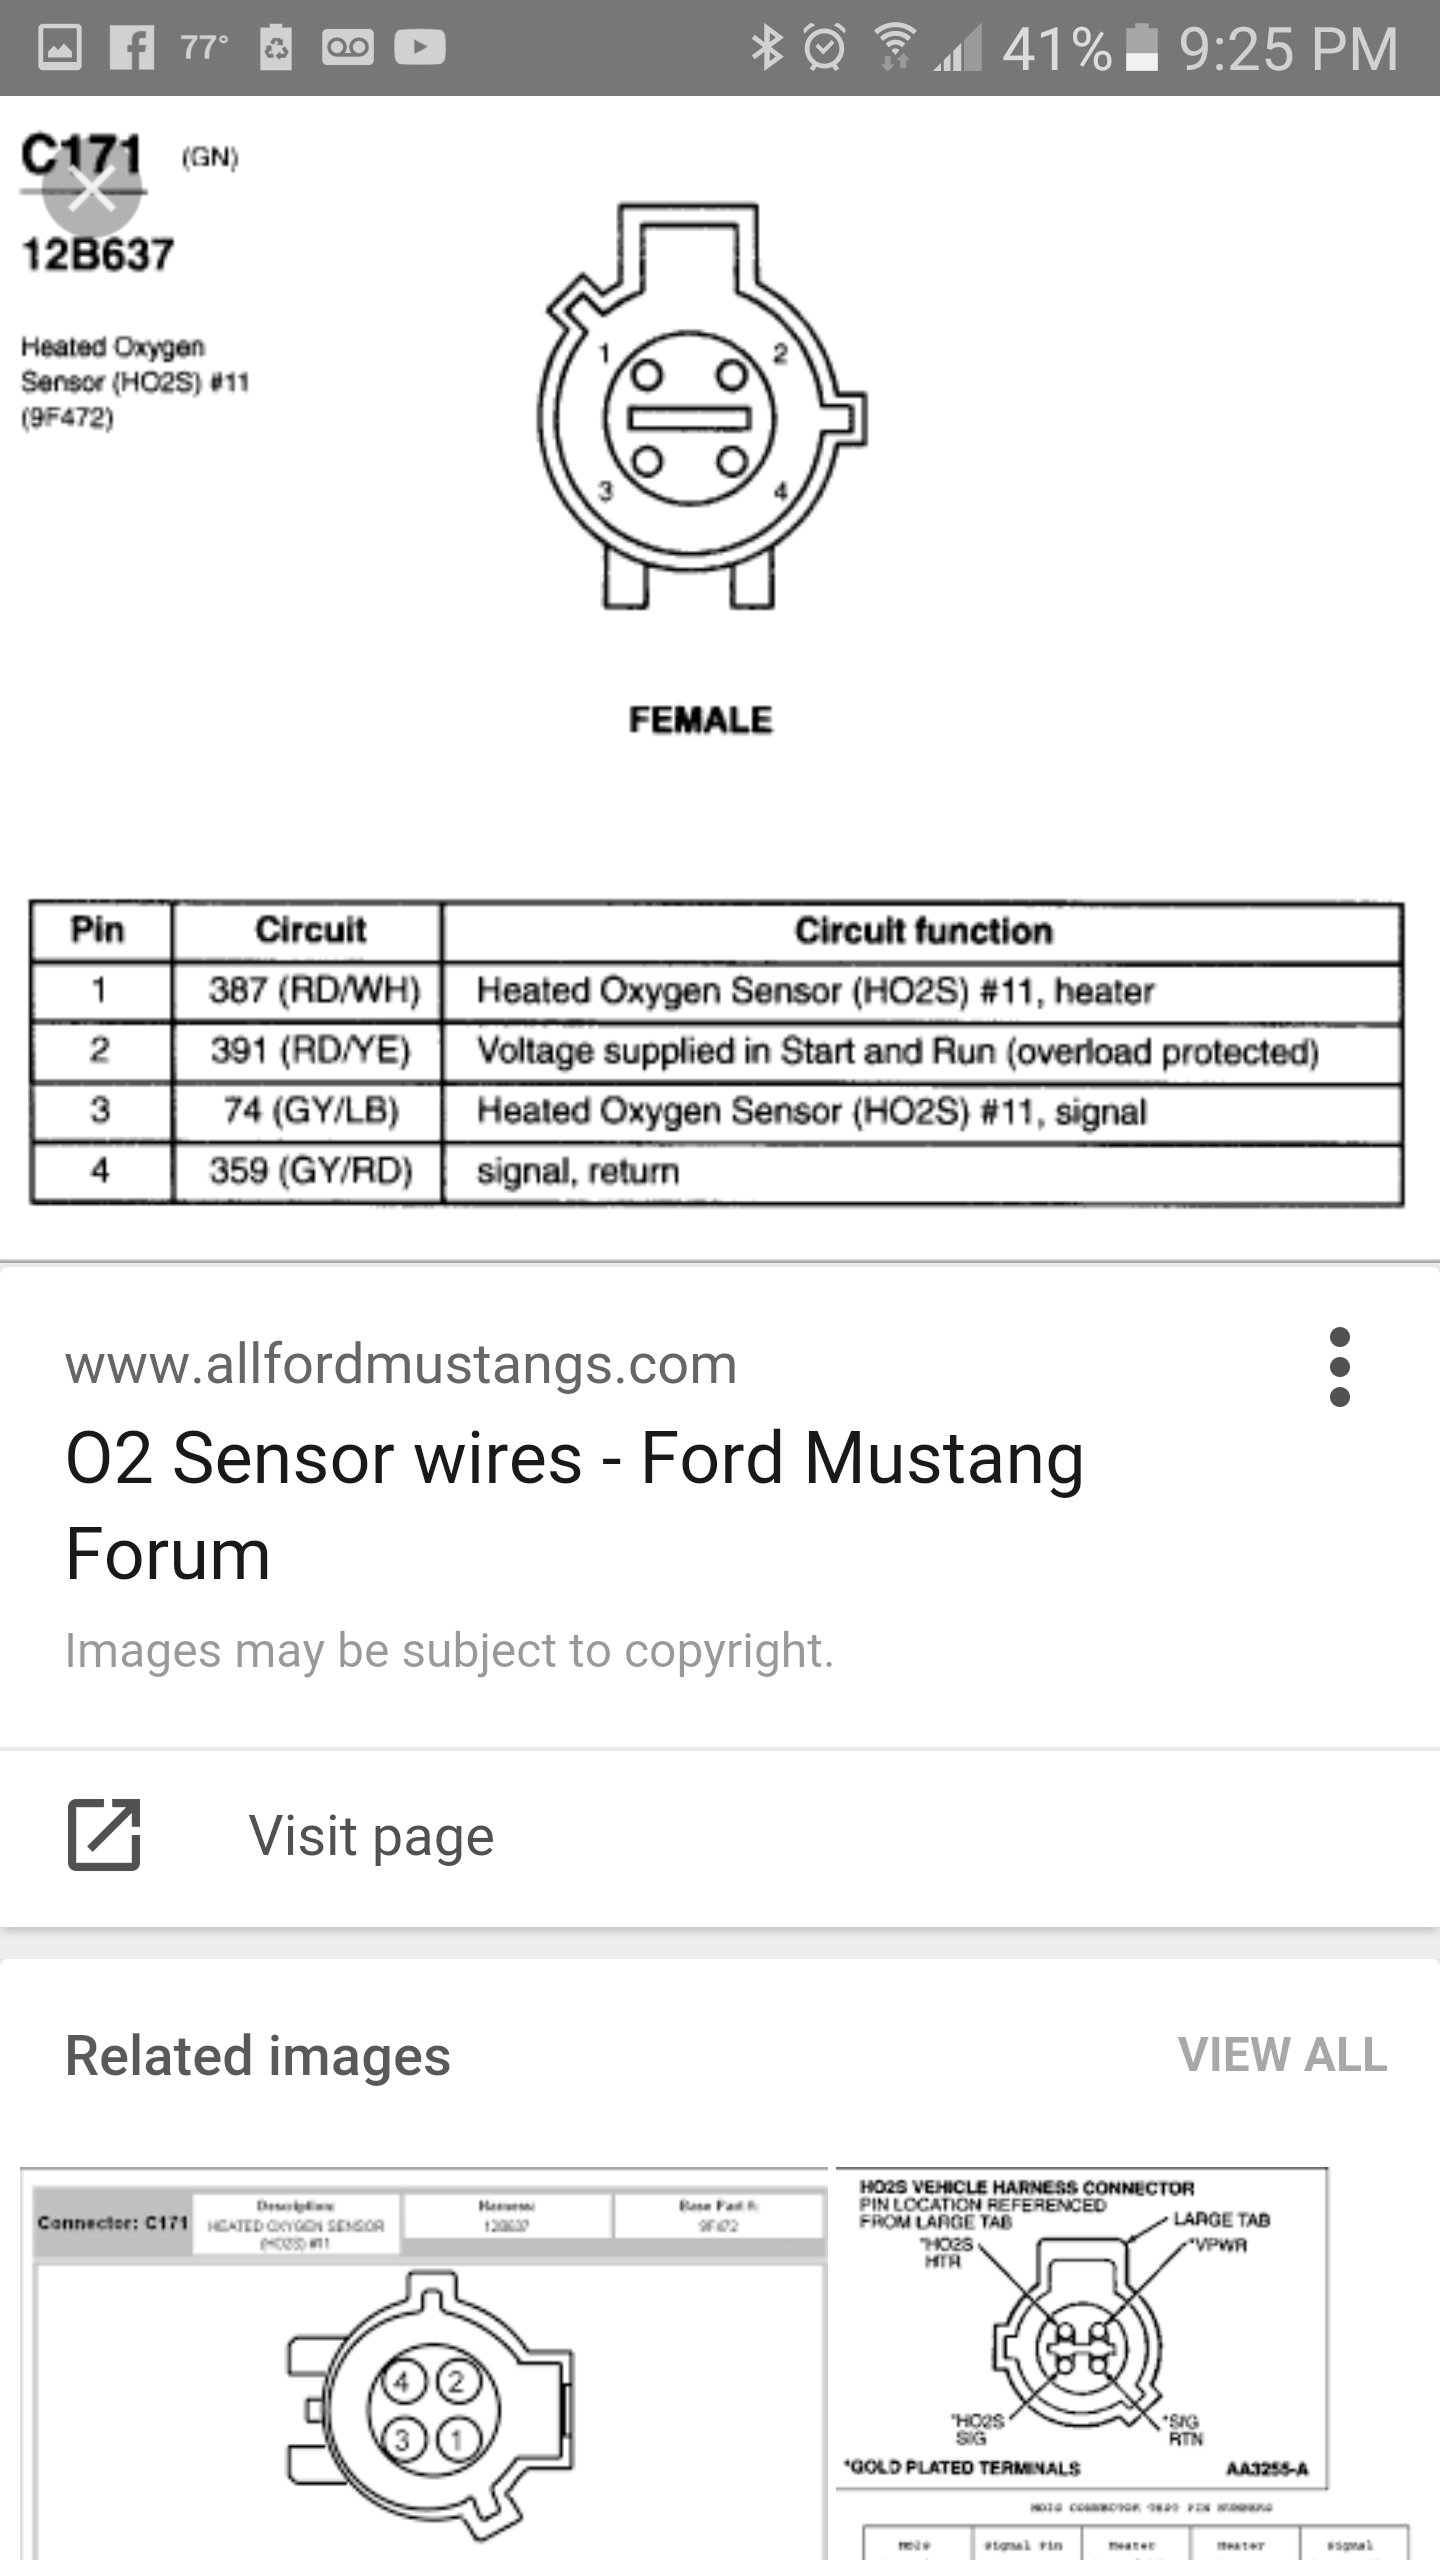 Universal O2 Wiring Diagram And Schematics Volkswagen Sensor Source Mustang V6 Harness Pinched Ford Forum Fan Clutch Image